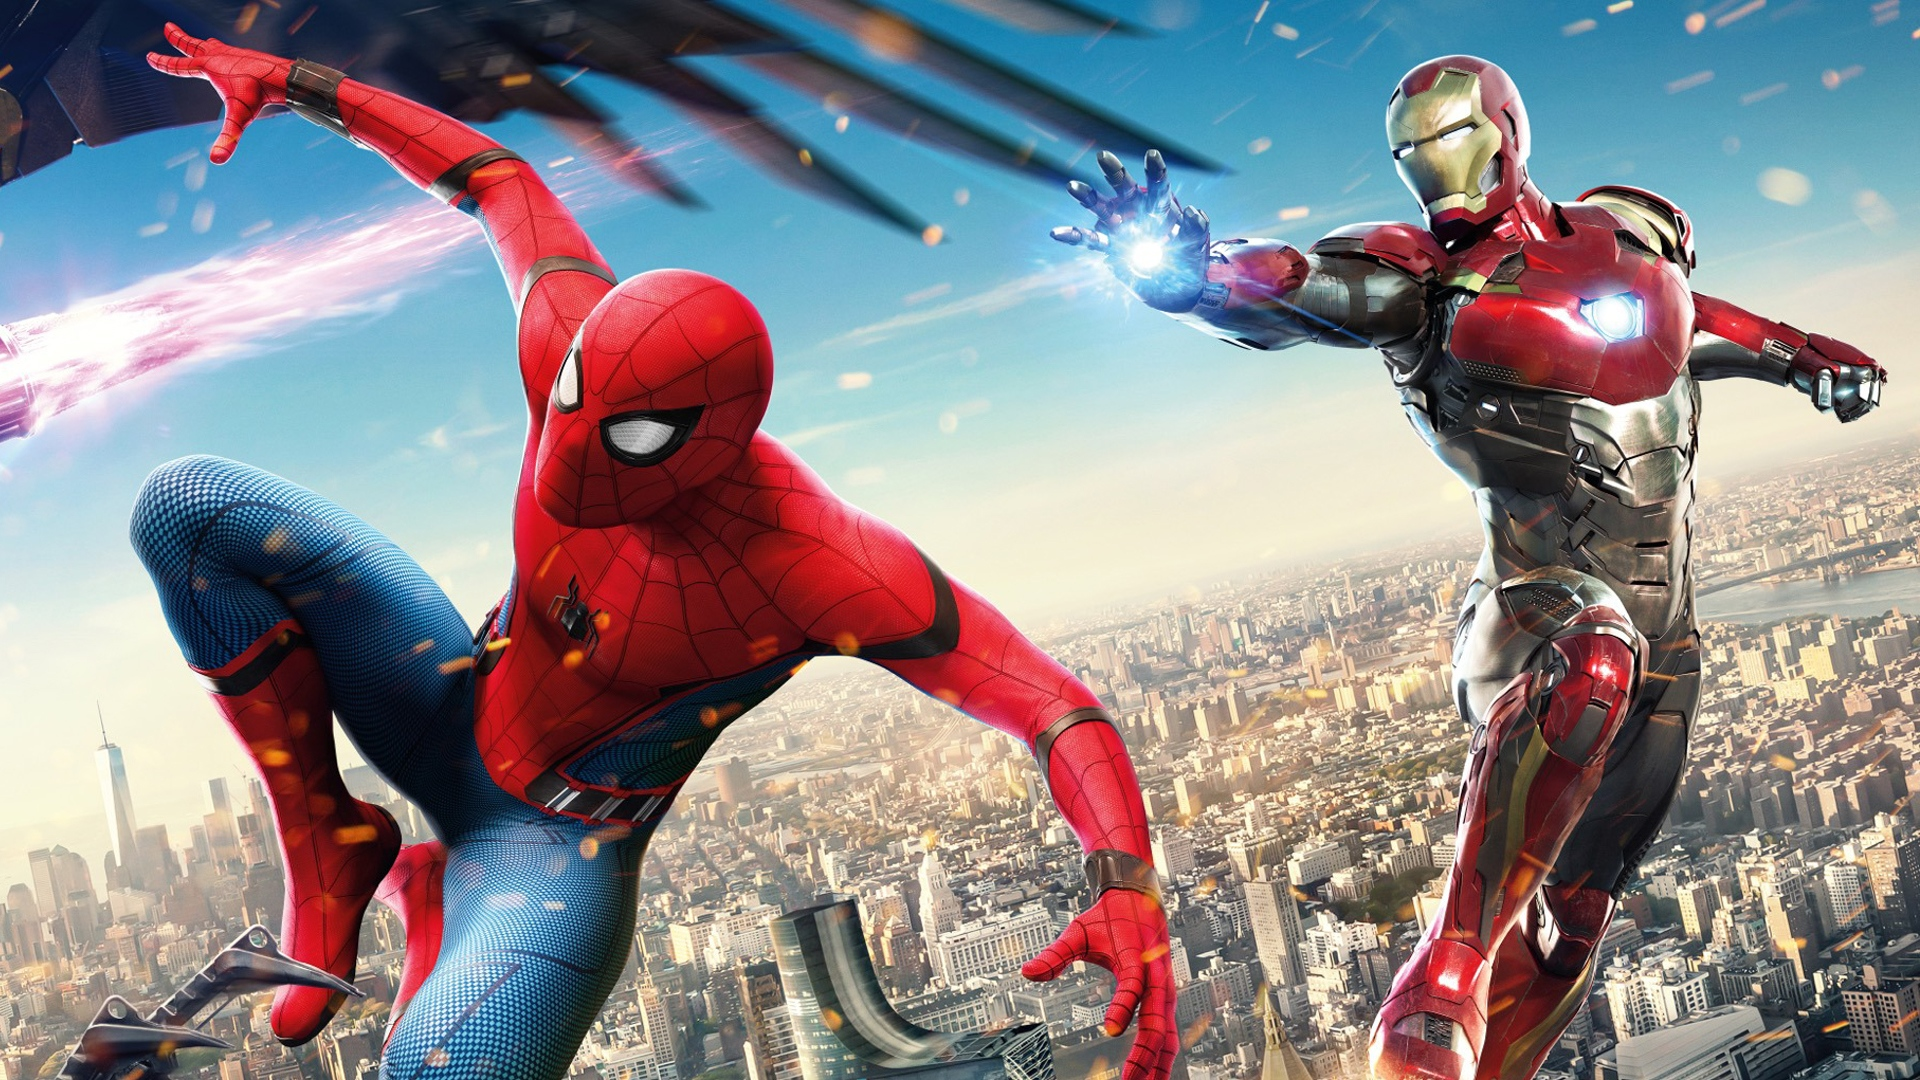 spiderman_homecoming-spiderman-and-iron_man-(21515)